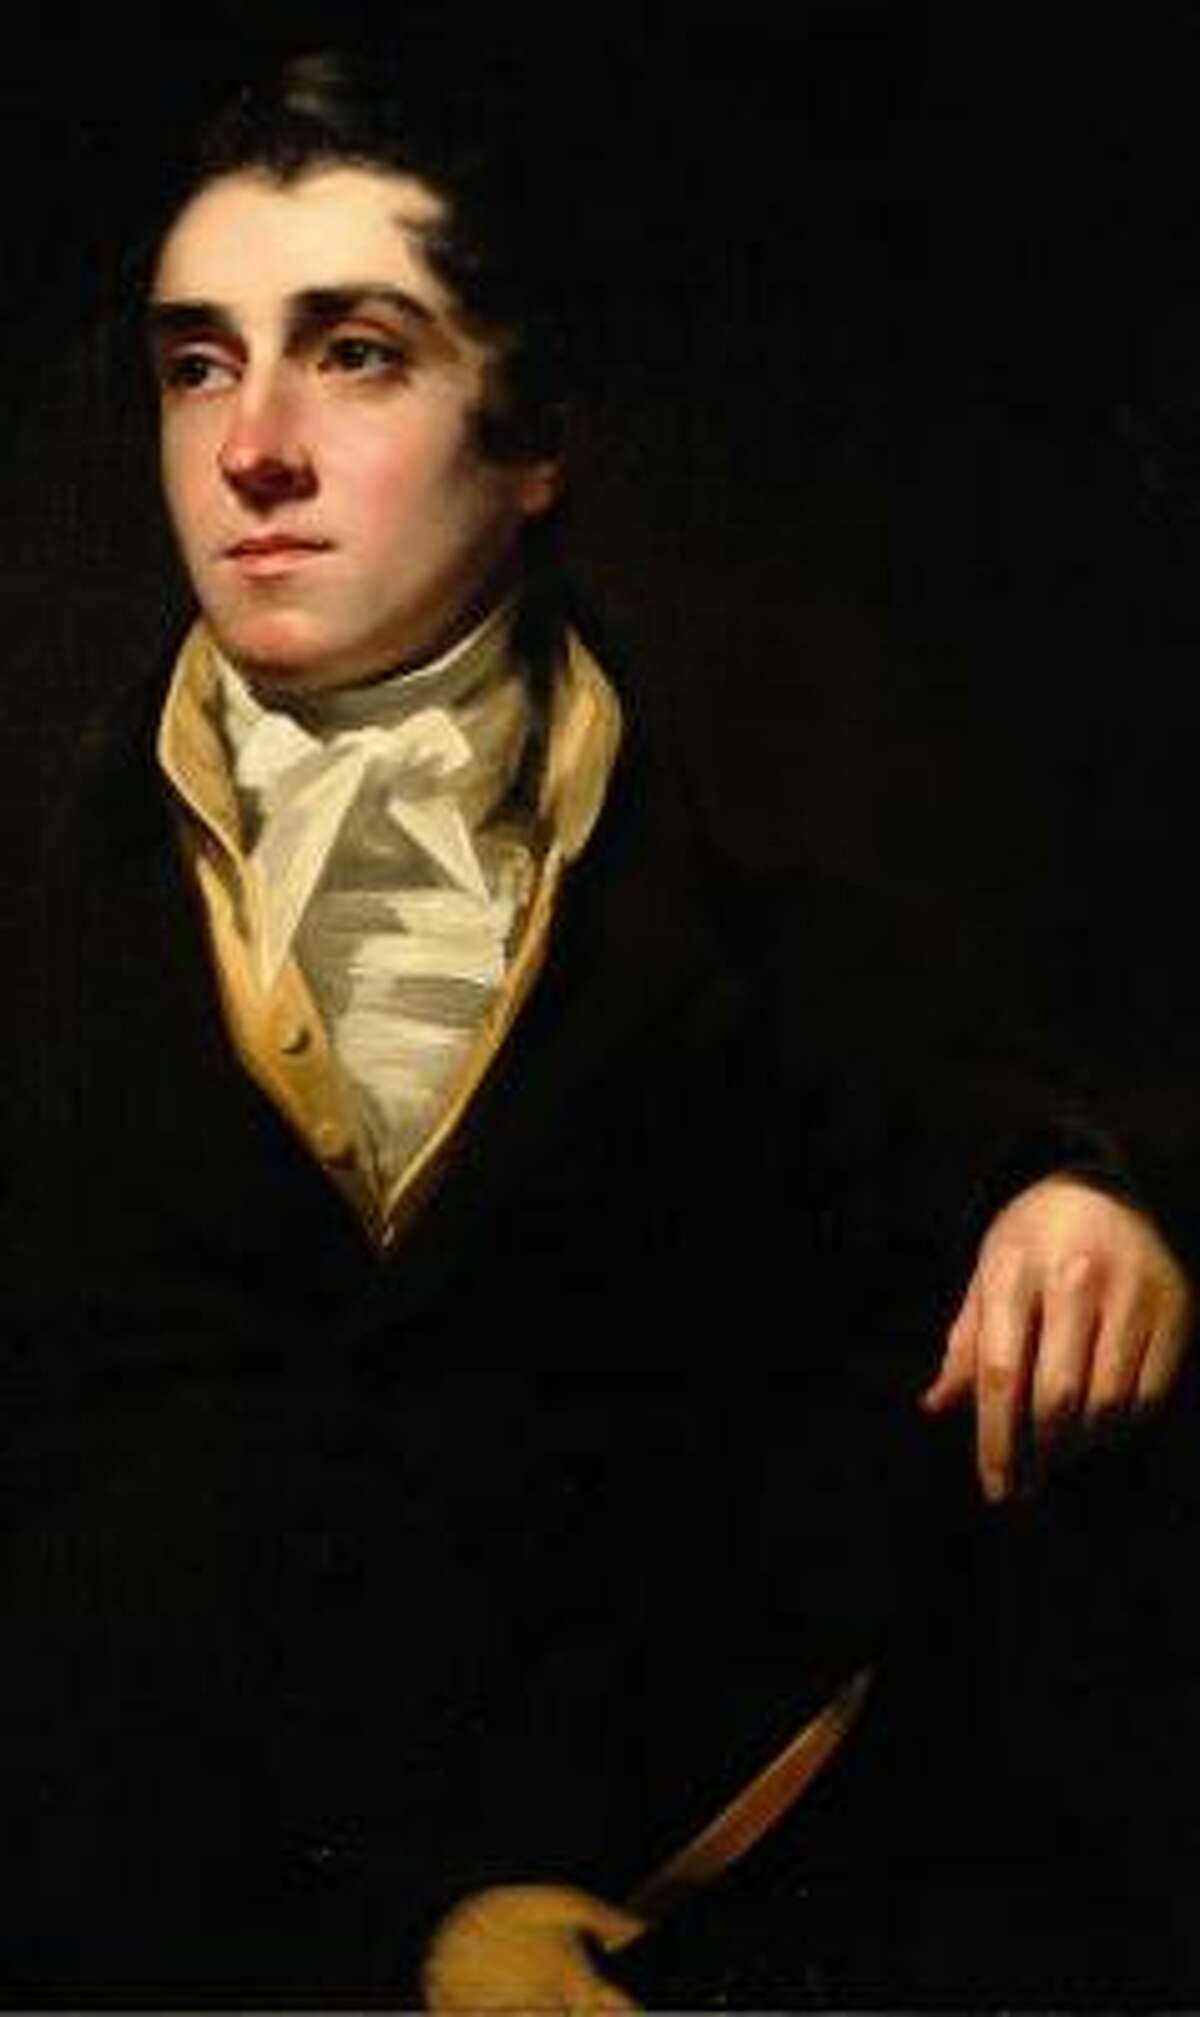 The painting attributed to Sir Henry Raeburn was identified at Sotheby's auction house last year.